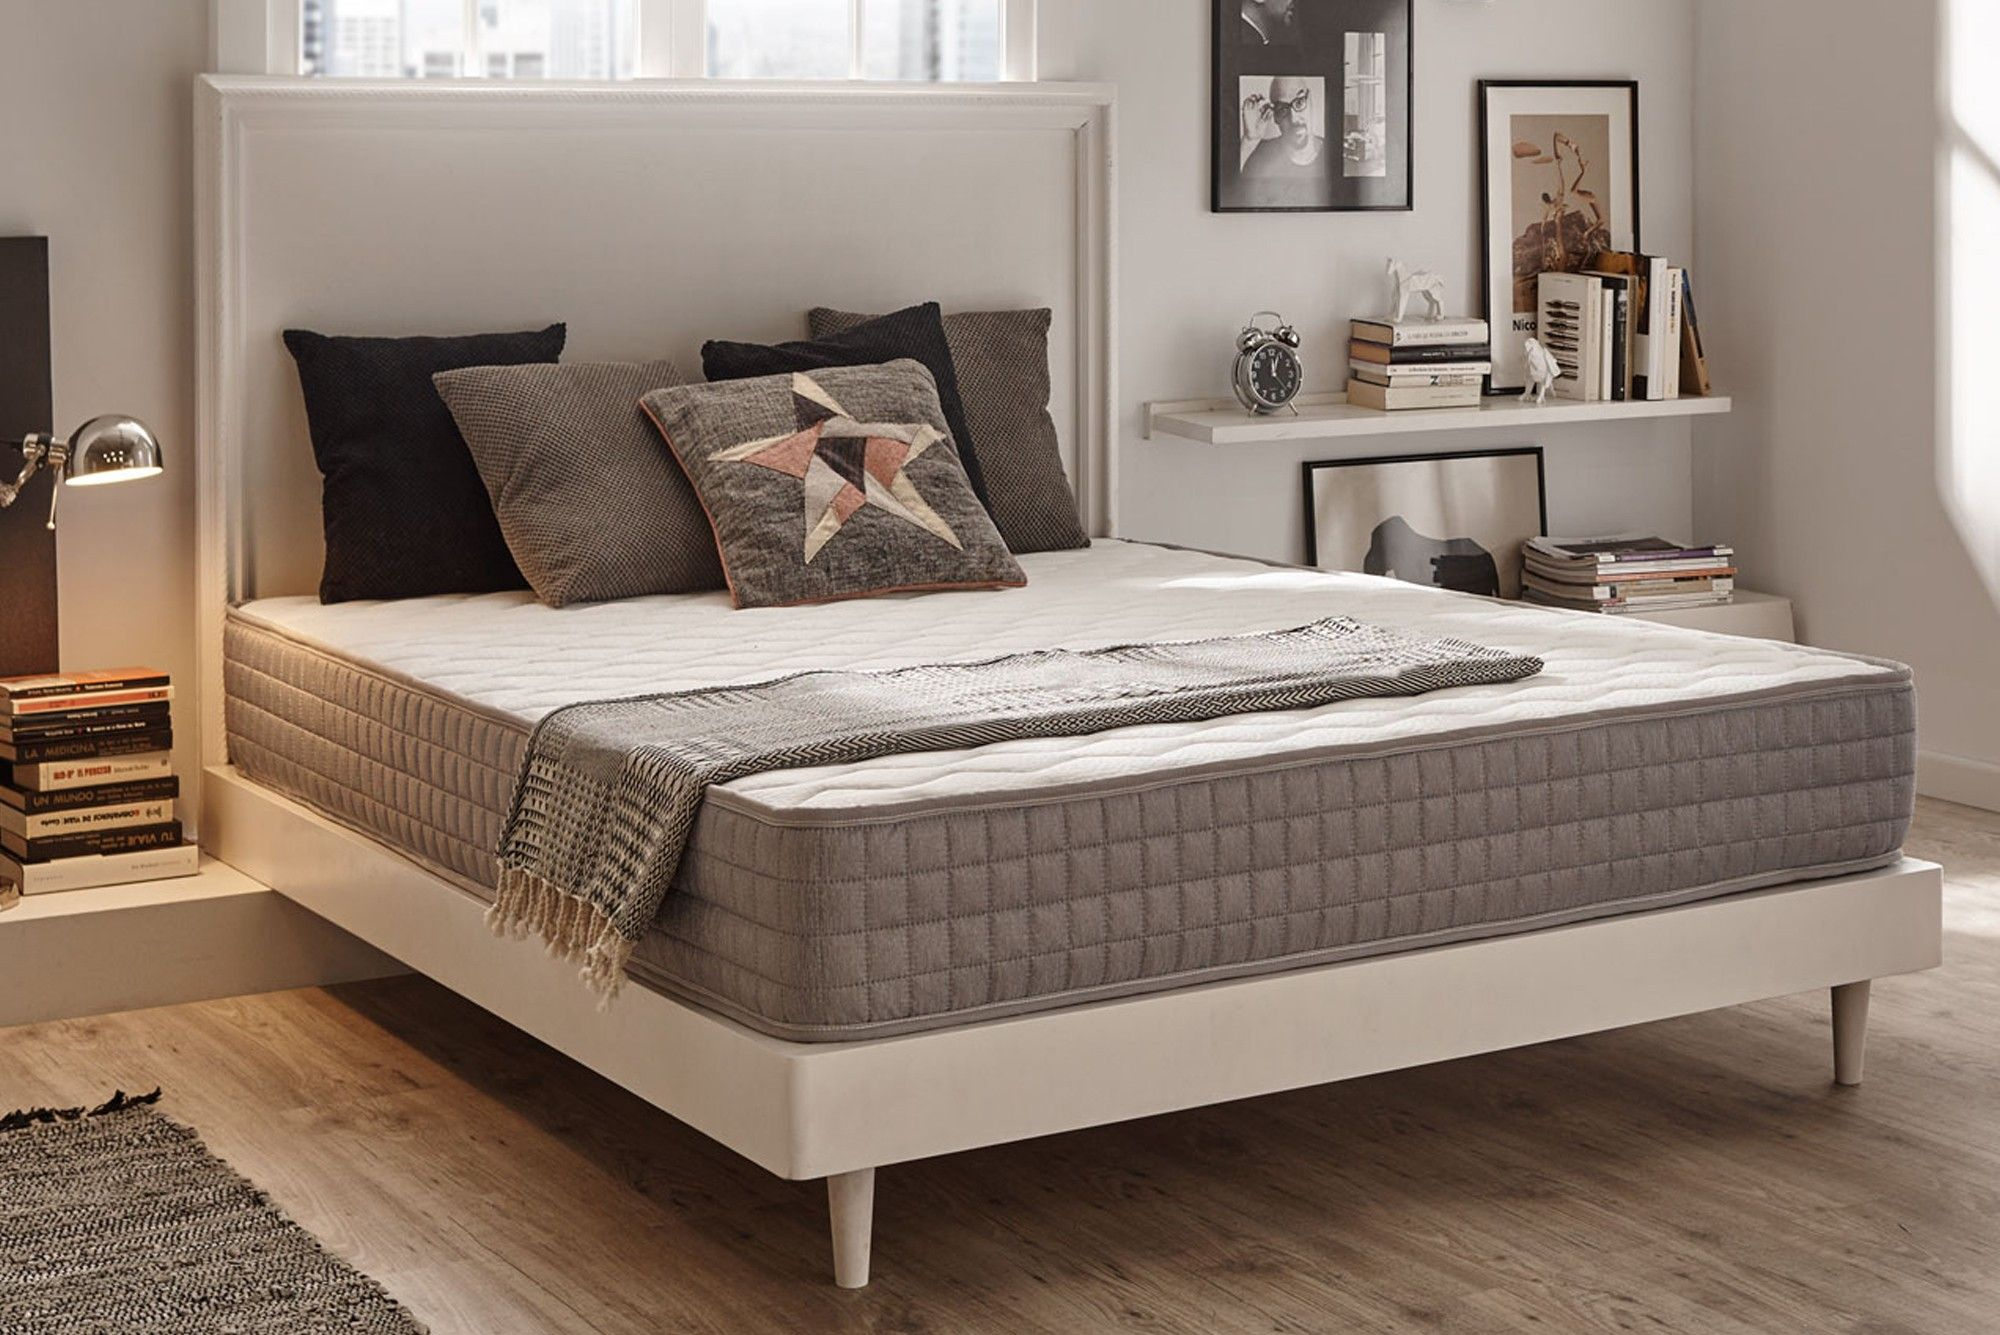 Soldes 126 09 Au Lieu De 523 77 Soit Une Remise De 76 Description Ce Matelas Dispose De Mousse A Memoire De Forme Haute De With Images Home Decor Furniture Decor